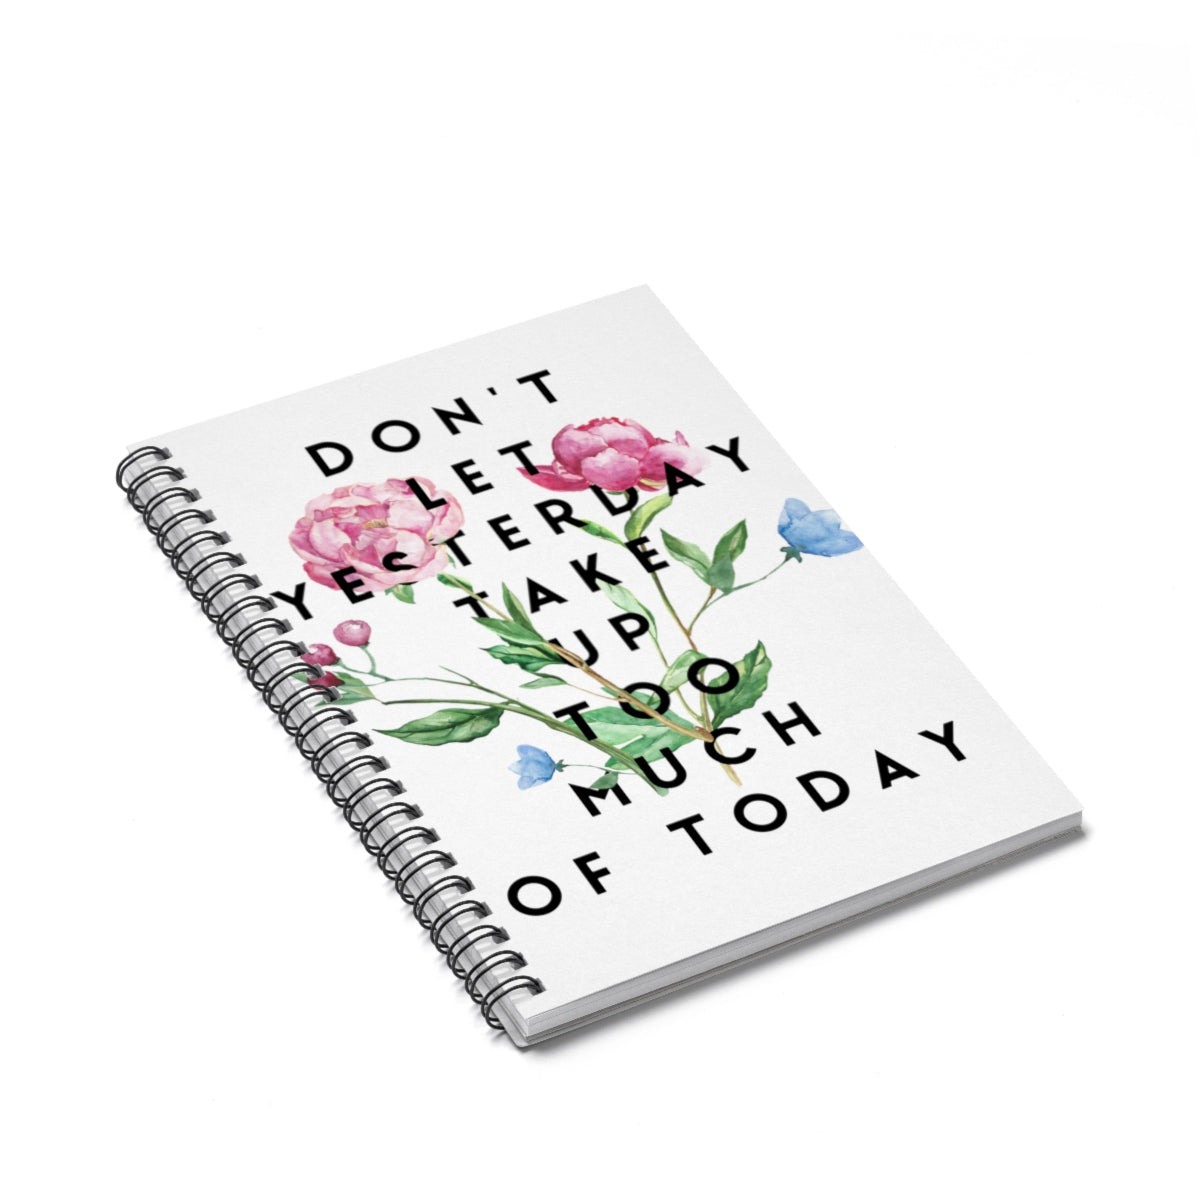 Don't Let Yesterday Spiral Notebook